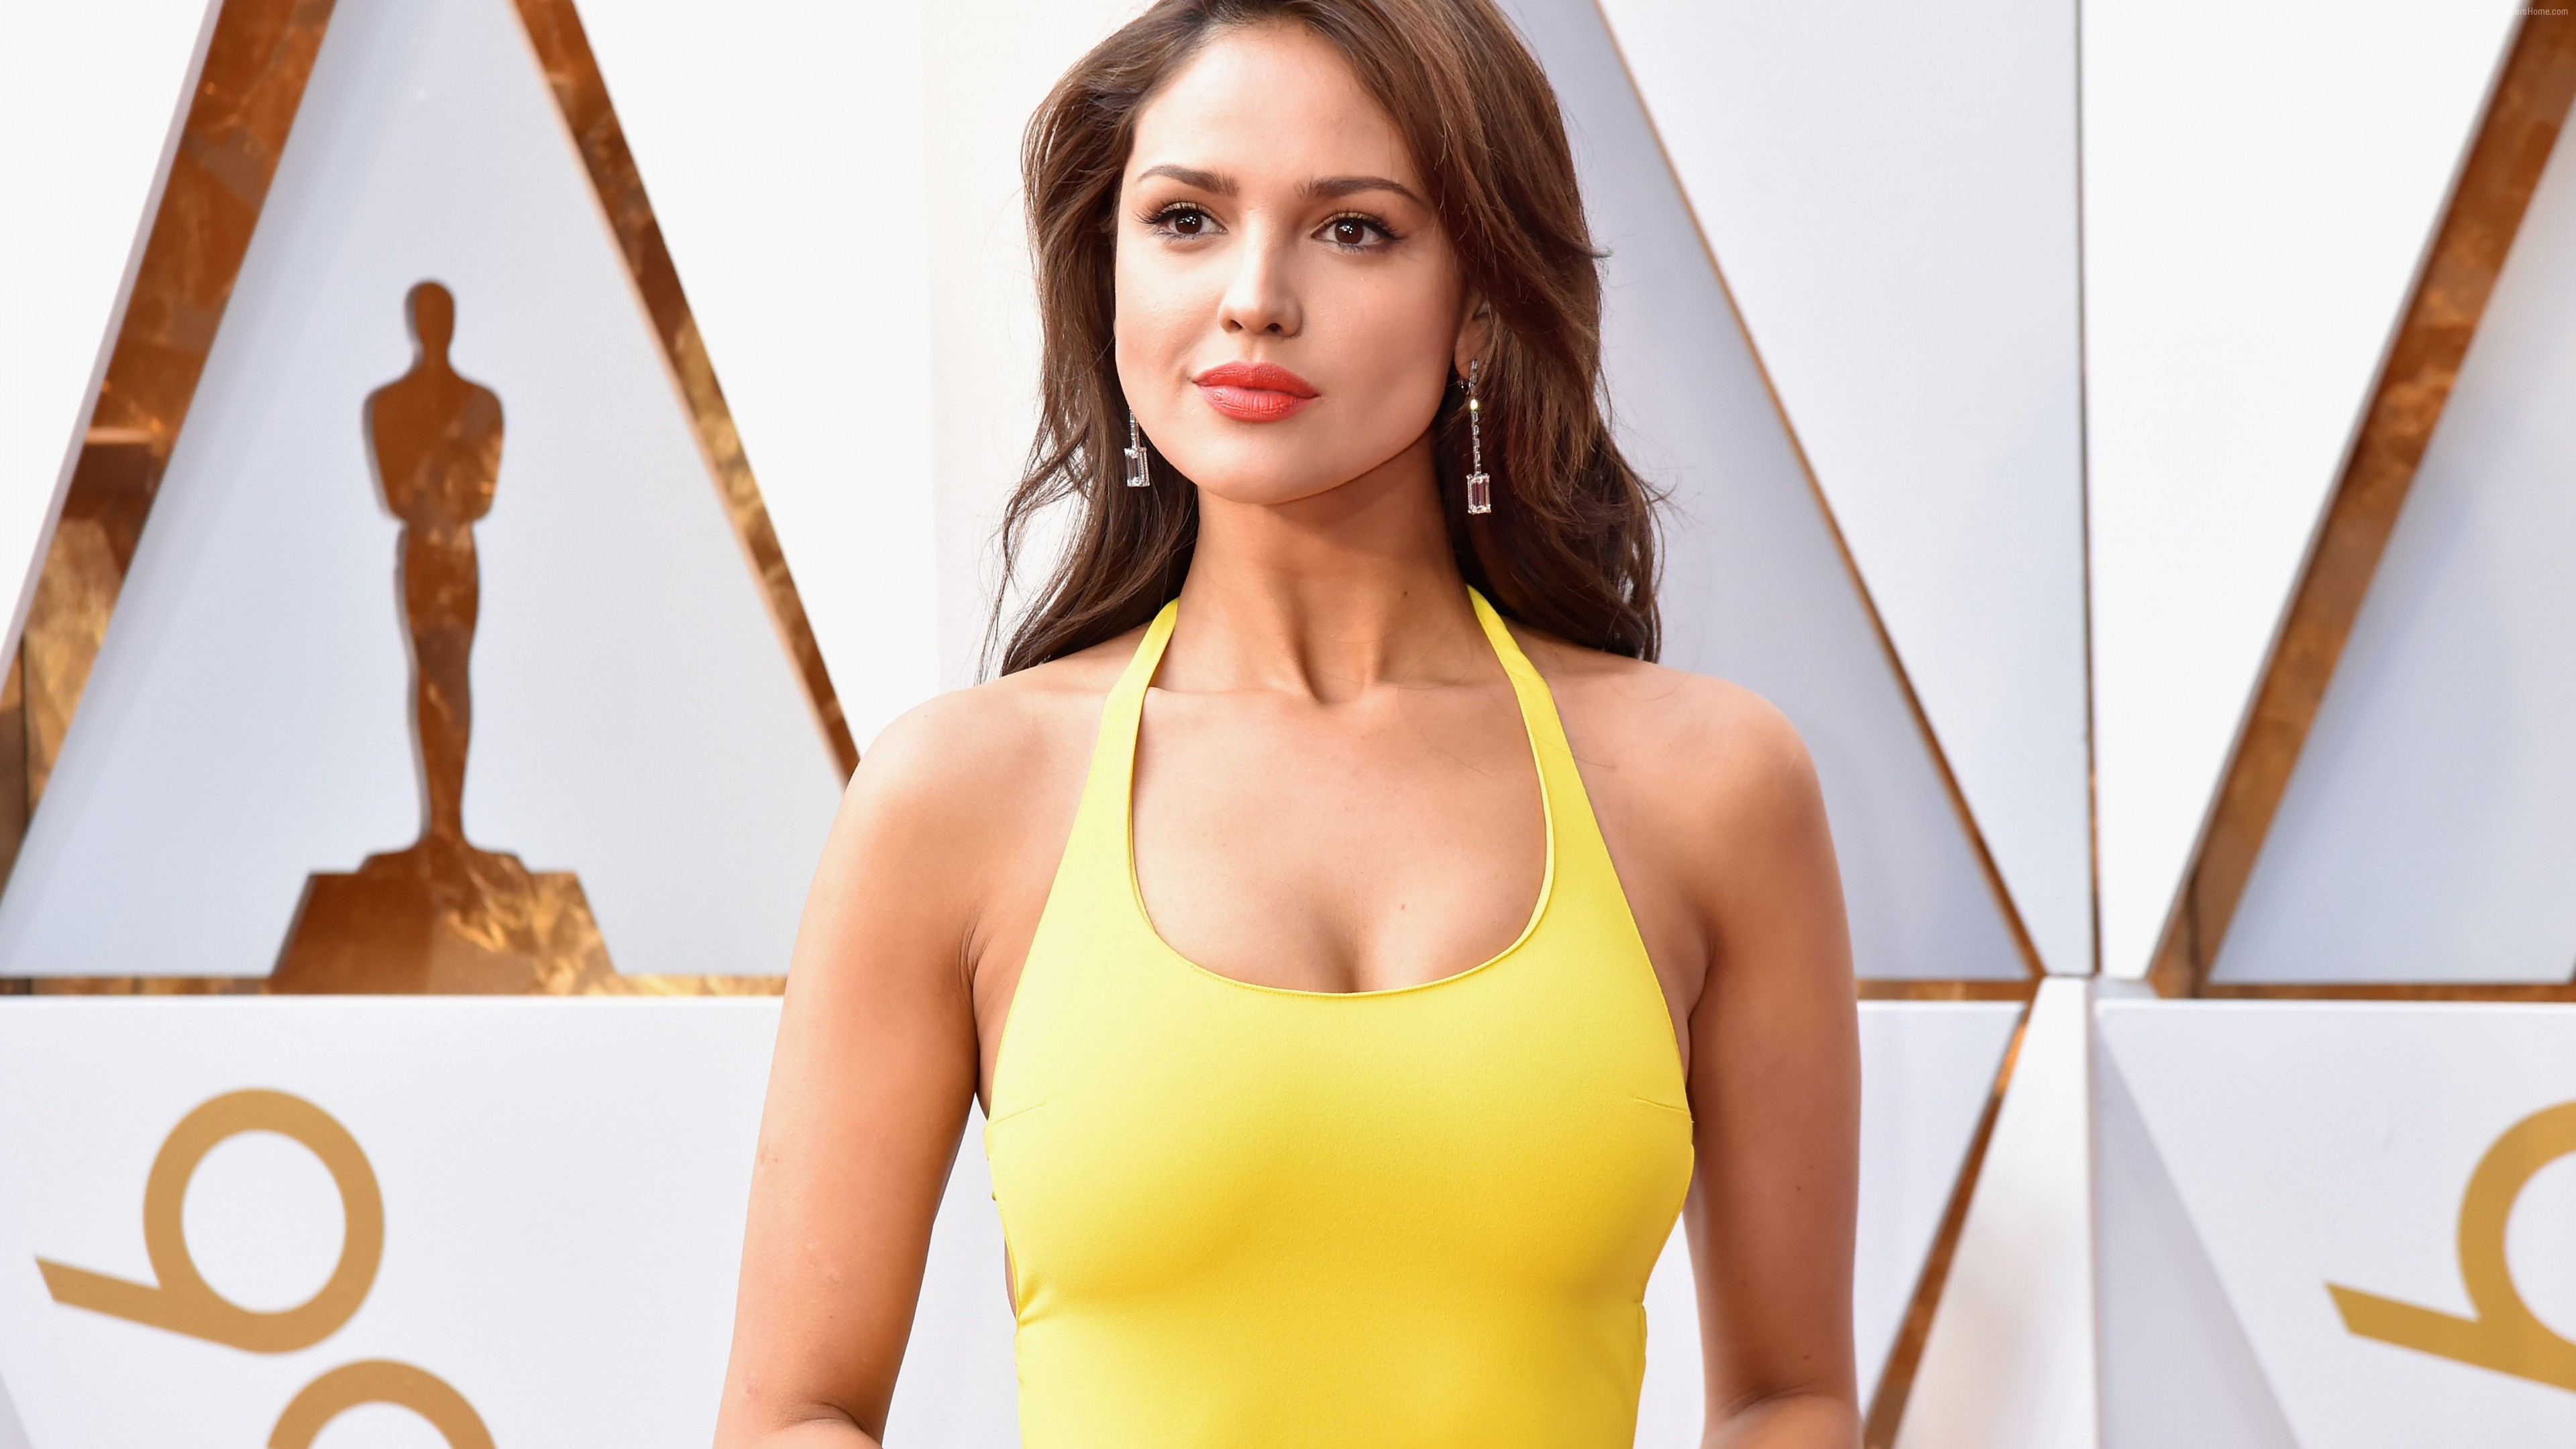 Wallpaper Eiza Gonzales, Oscar 2018, photo, 4k, Celebrities